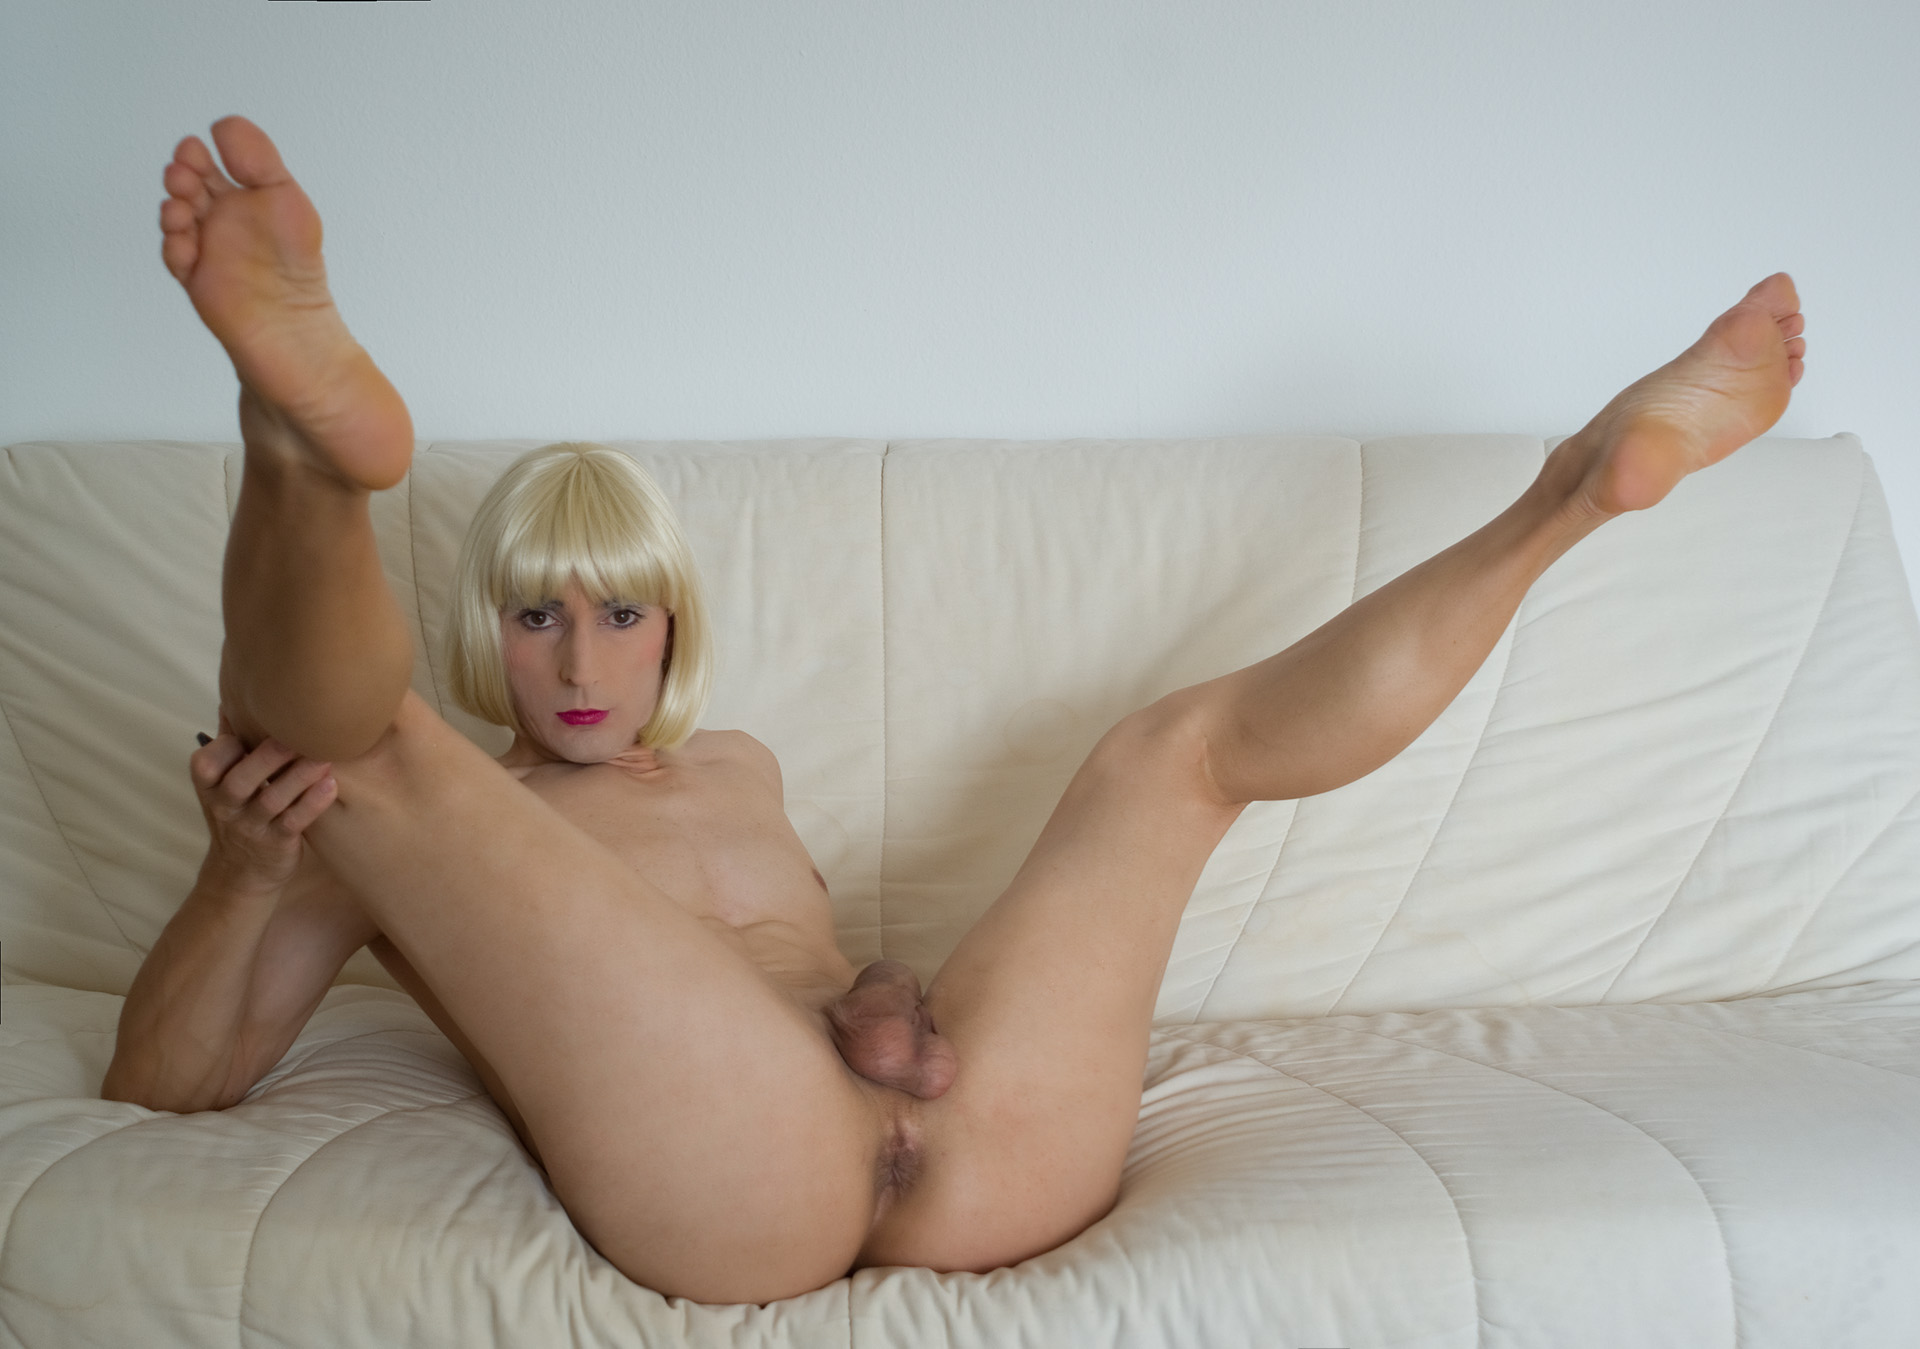 Rough ass to mouth fucking for haley page 7